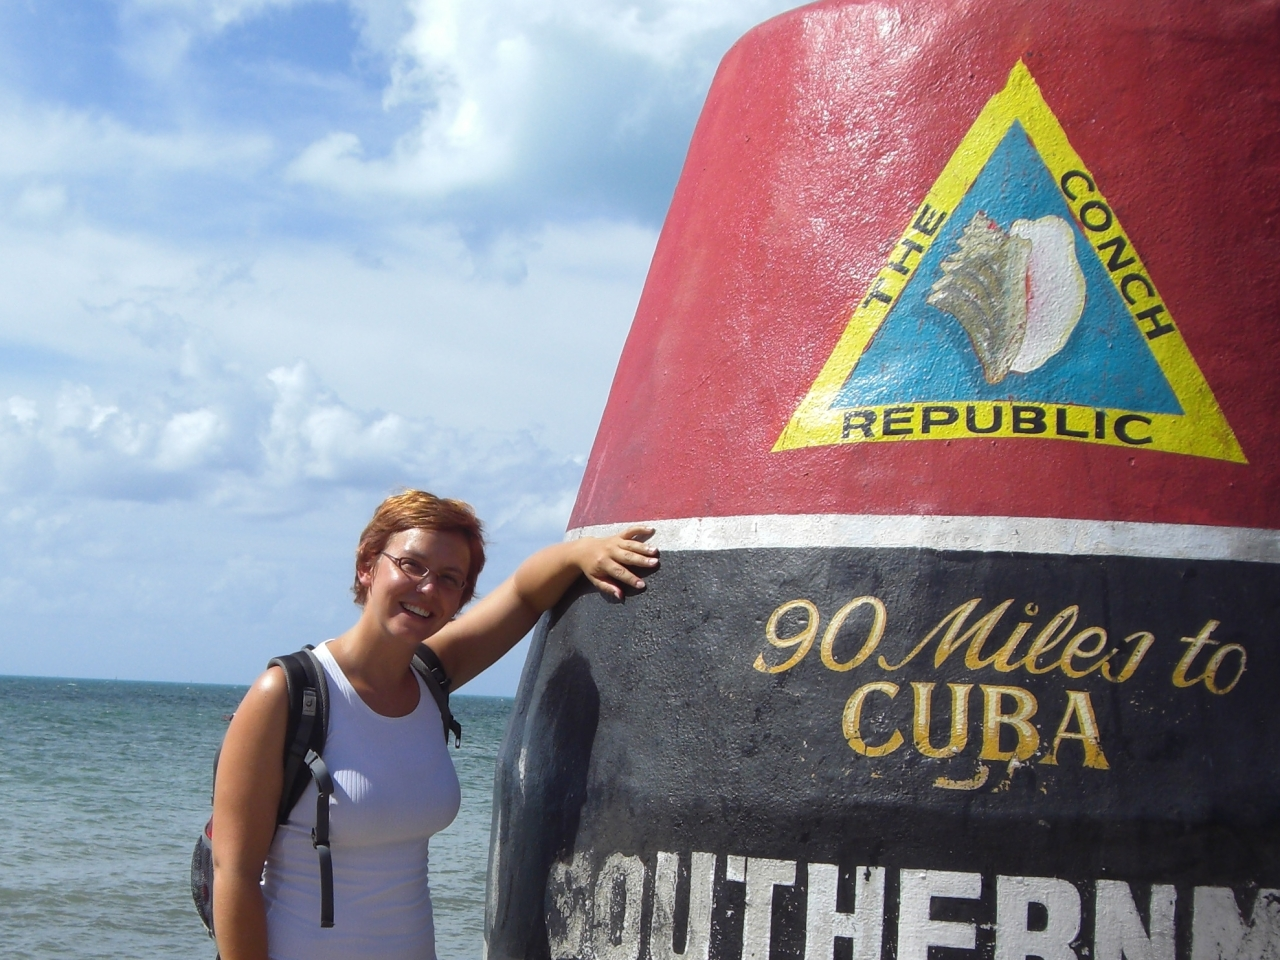 Southernmost Anna